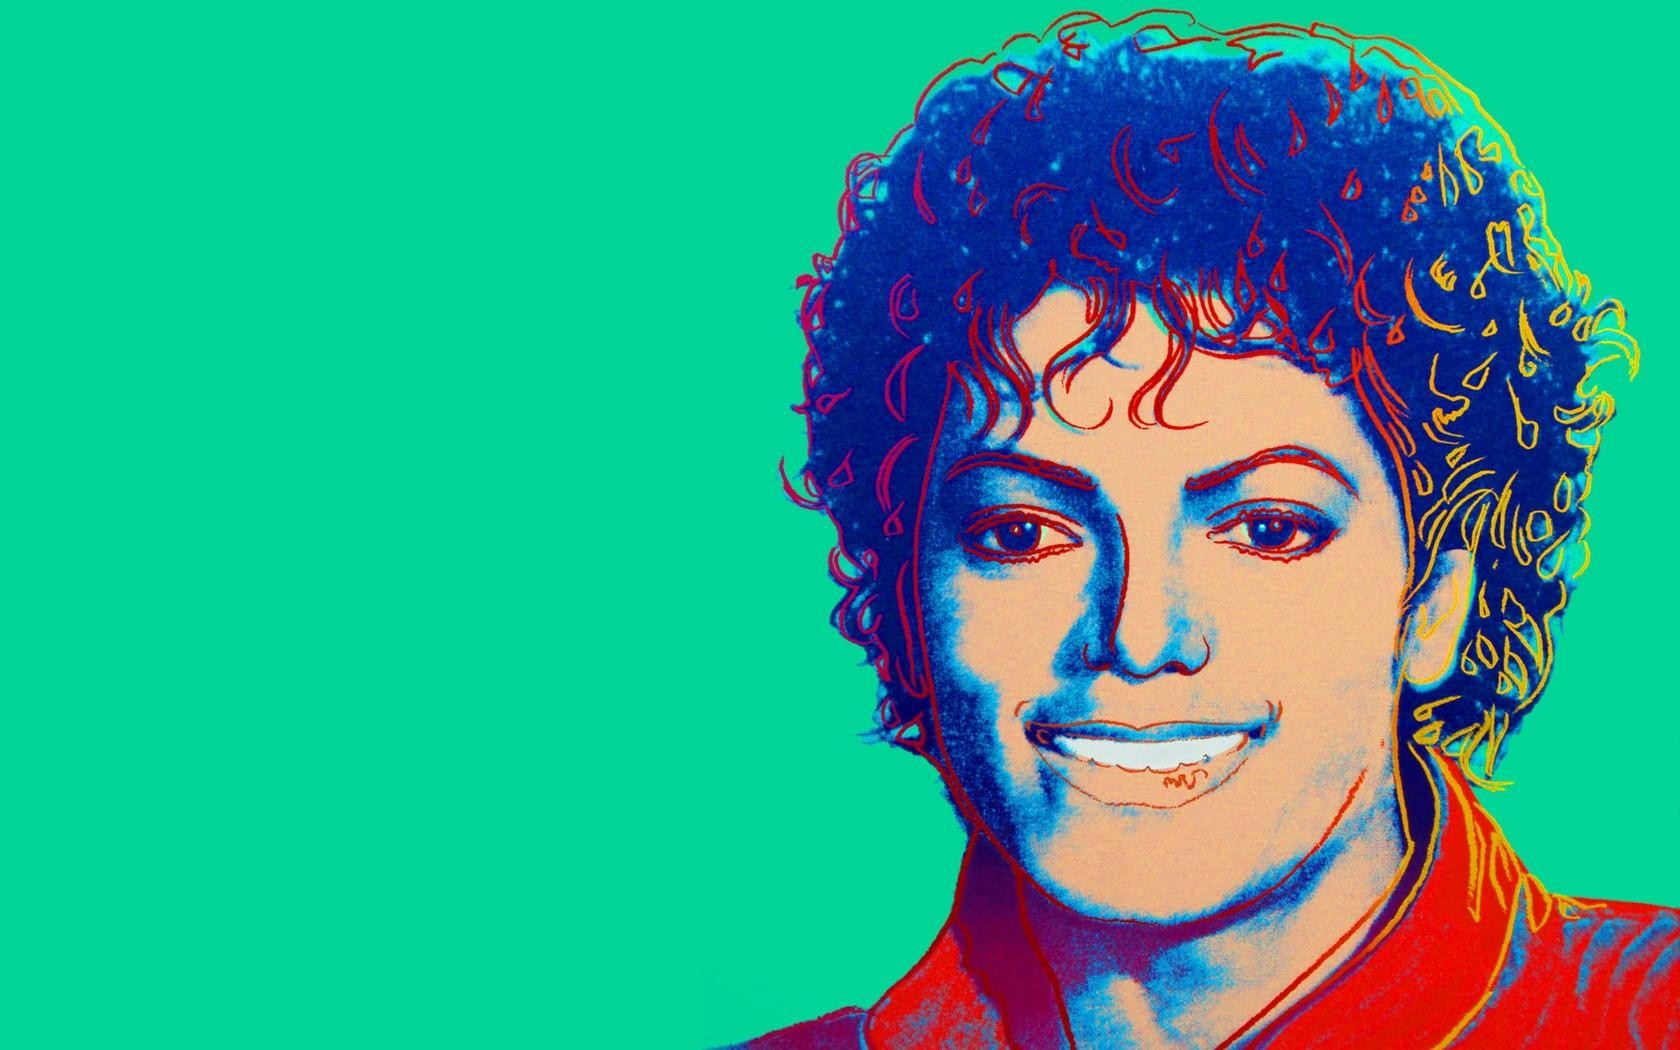 Michael Jackson by Andy Warhol (1984)wallpaper 1680x1050